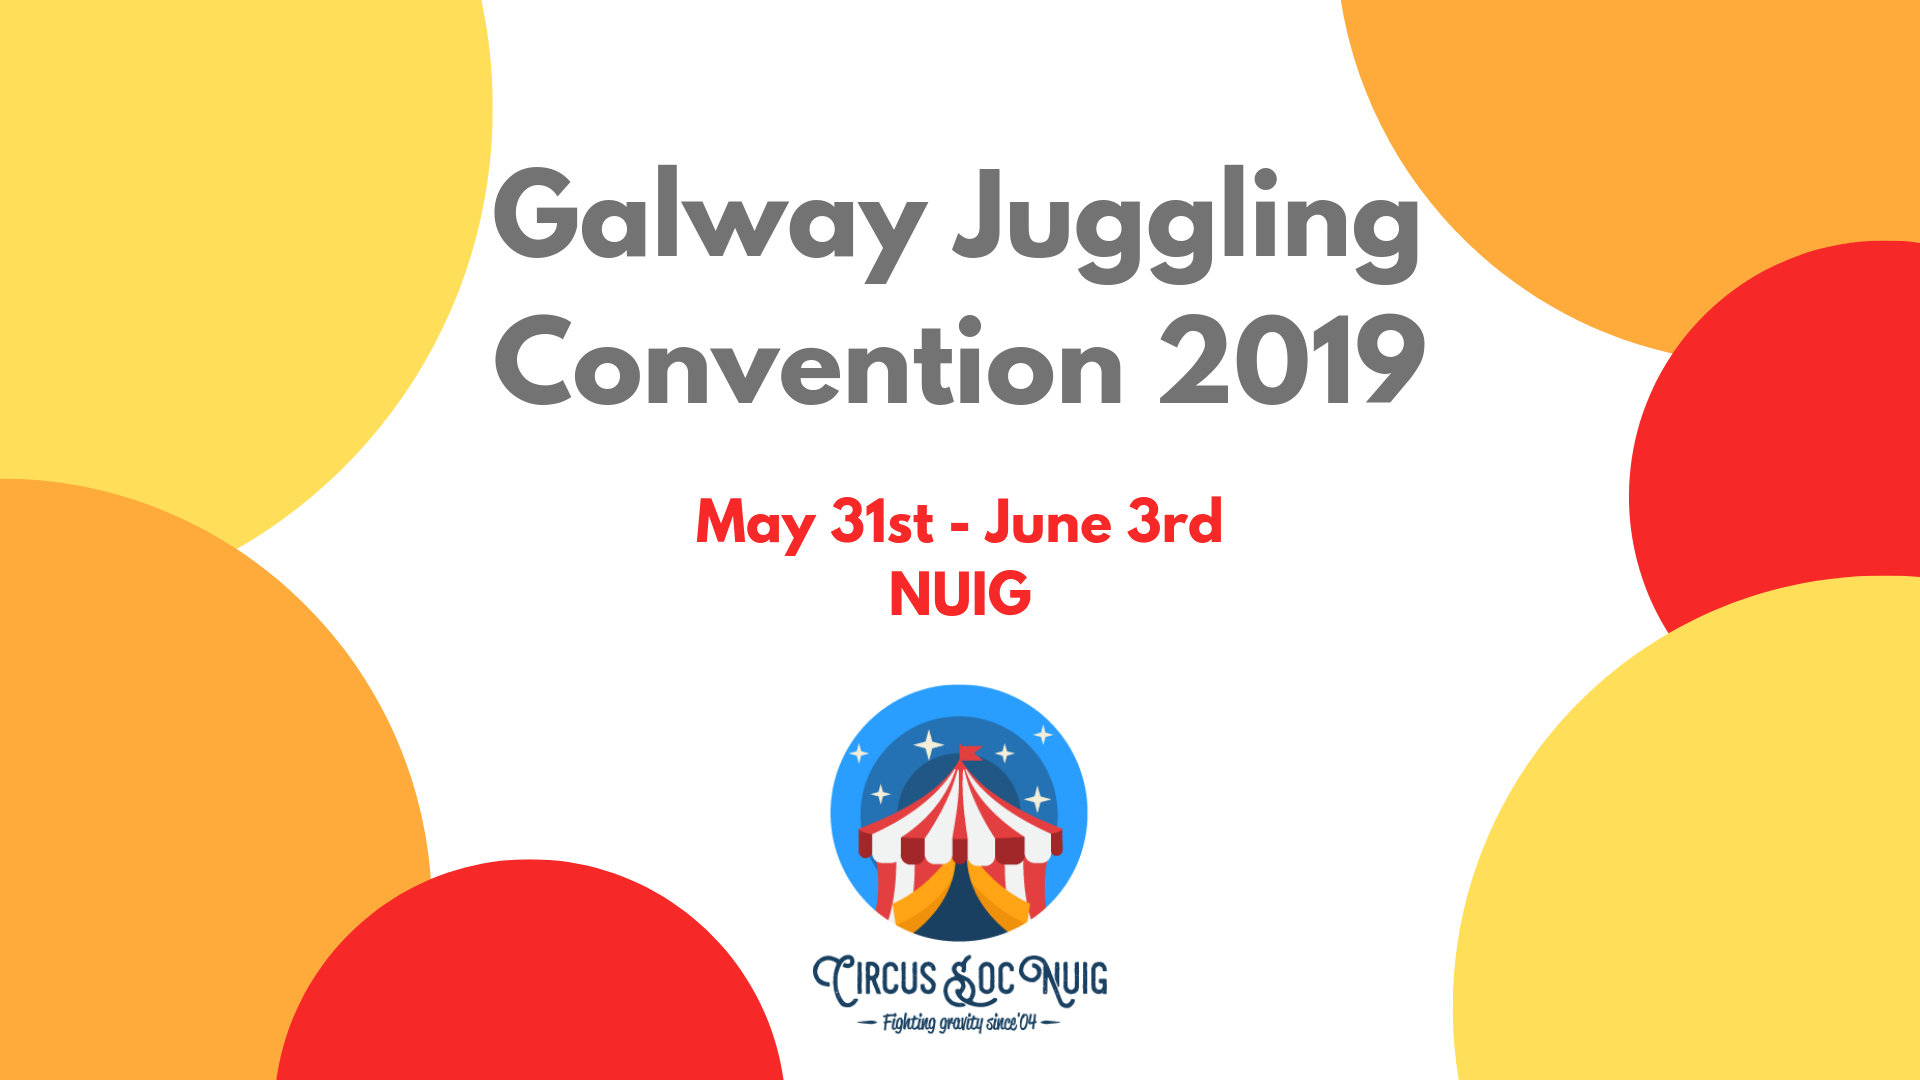 Galway Juggling Convention 2019